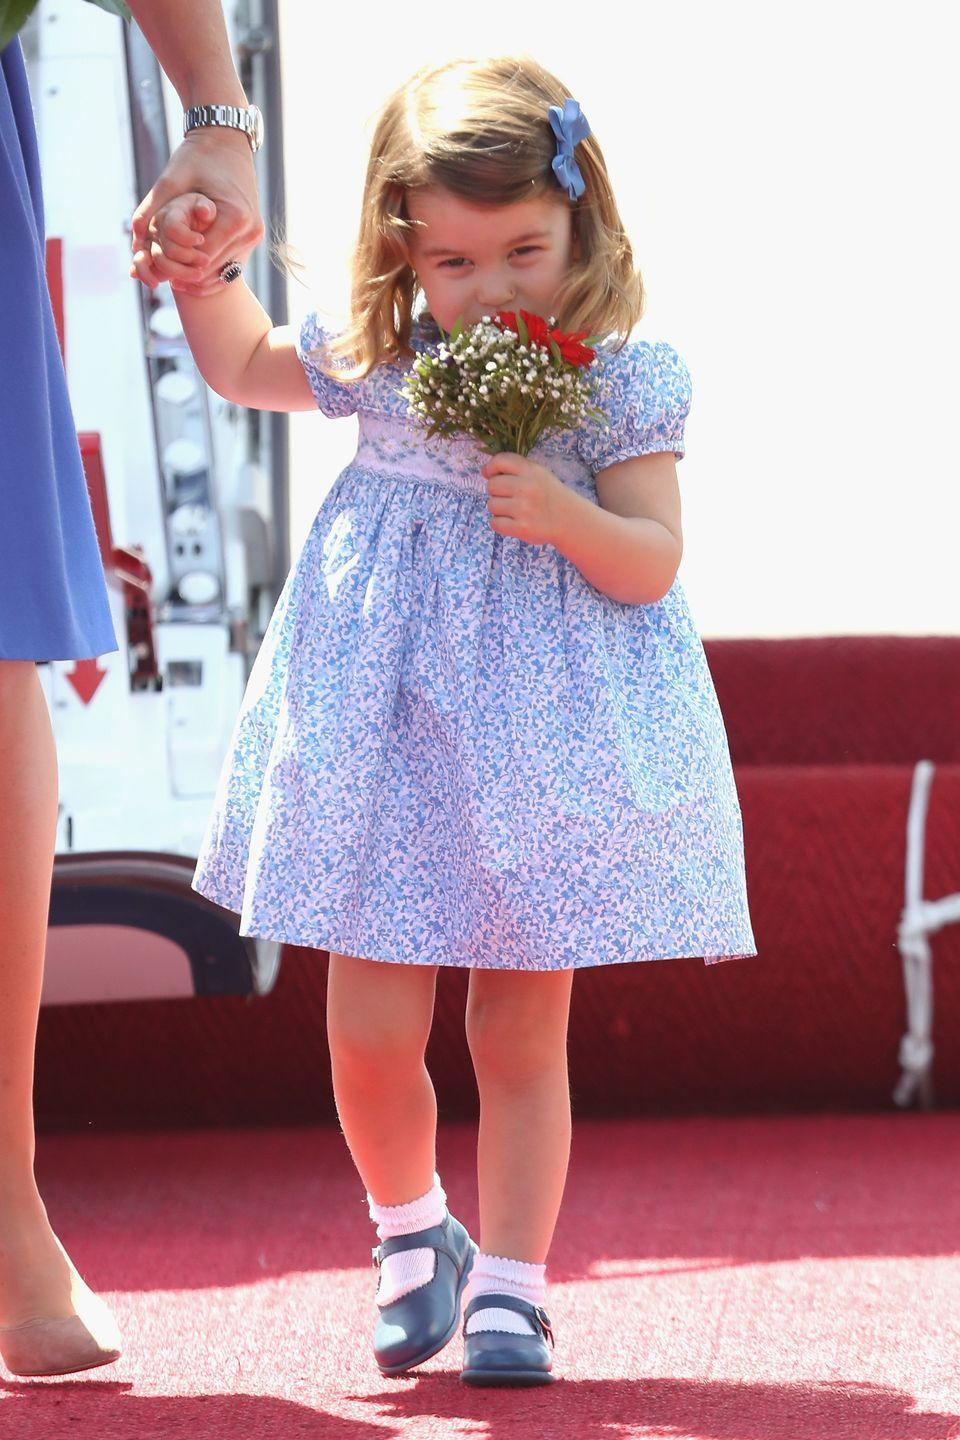 """<p>From toys to flower bouquets, royal children are often showered in gifts whenever they attend public events. Though per royal protocol, the <a href=""""https://www.goodhousekeeping.com/life/g4817/odd-royal-family-rules/?slide=31"""" rel=""""nofollow noopener"""" target=""""_blank"""" data-ylk=""""slk:Queen gets to decide"""" class=""""link rapid-noclick-resp"""">Queen gets to decide</a> what they can keep.</p>"""